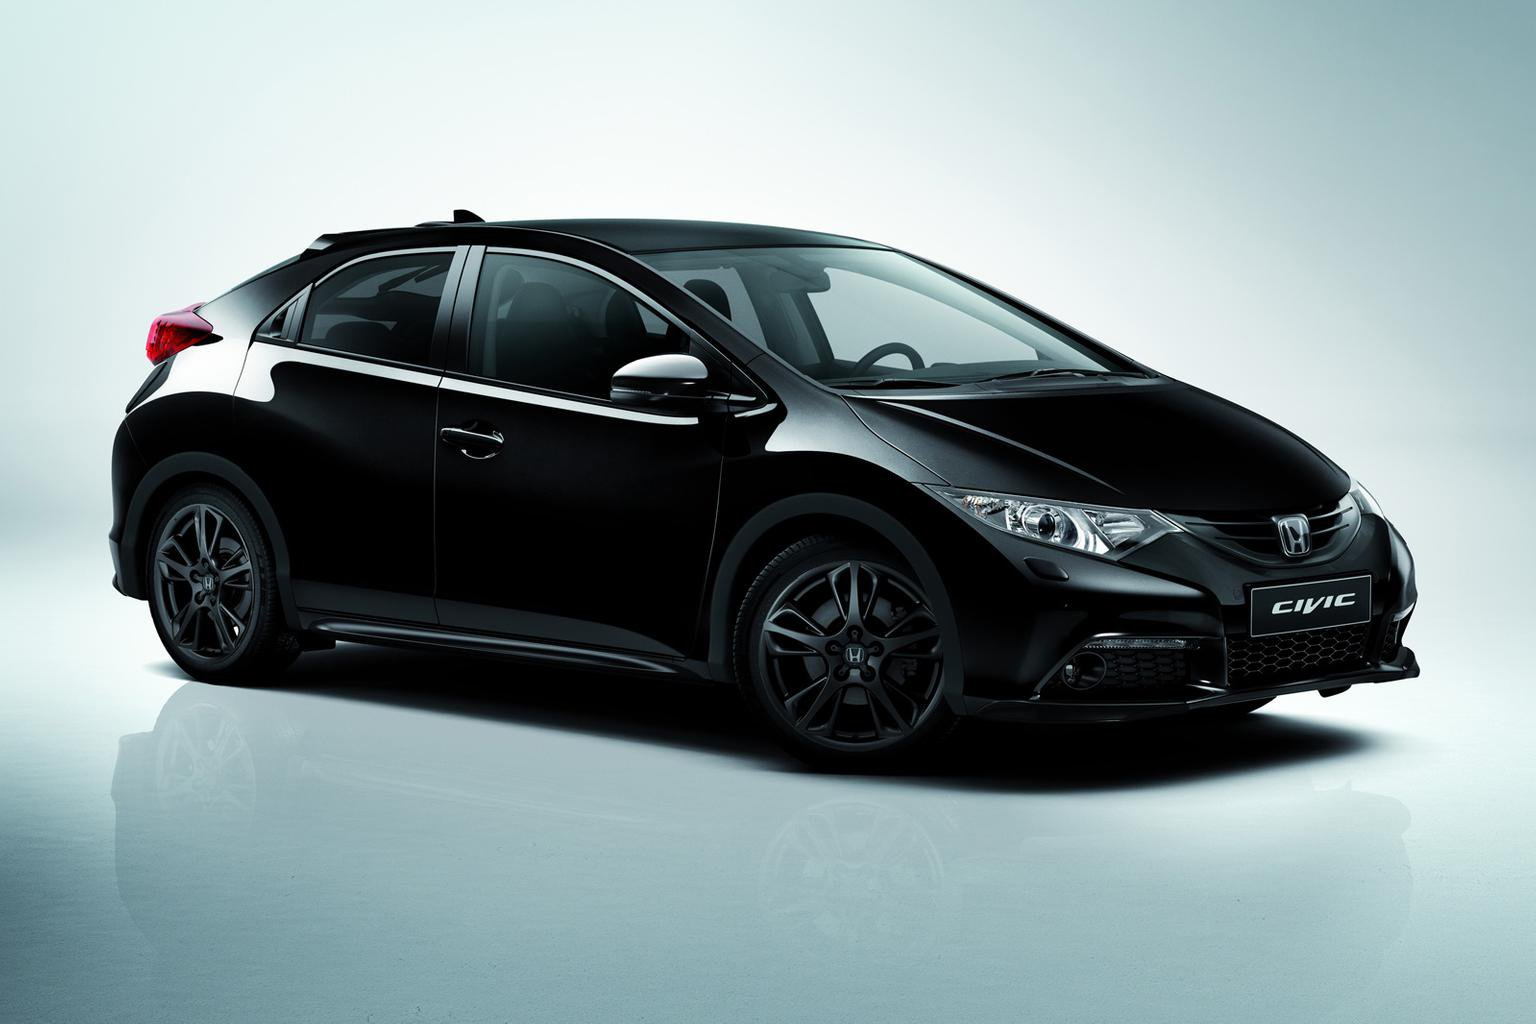 News round-up: Honda Black Editions revealed and Infiniti Q50 2.0 pricing